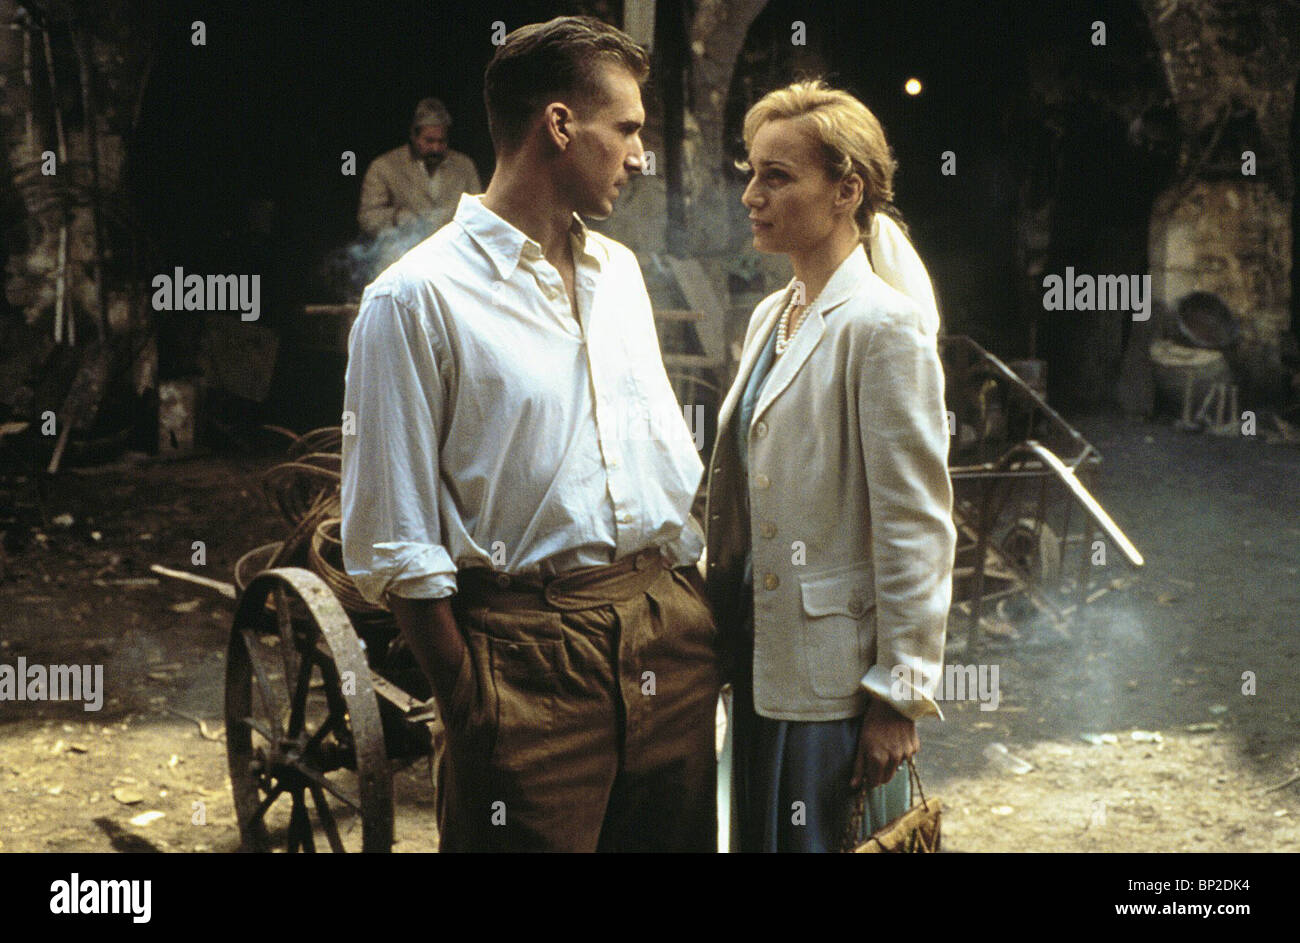 kristin scott thomas photos english patient impremedianet